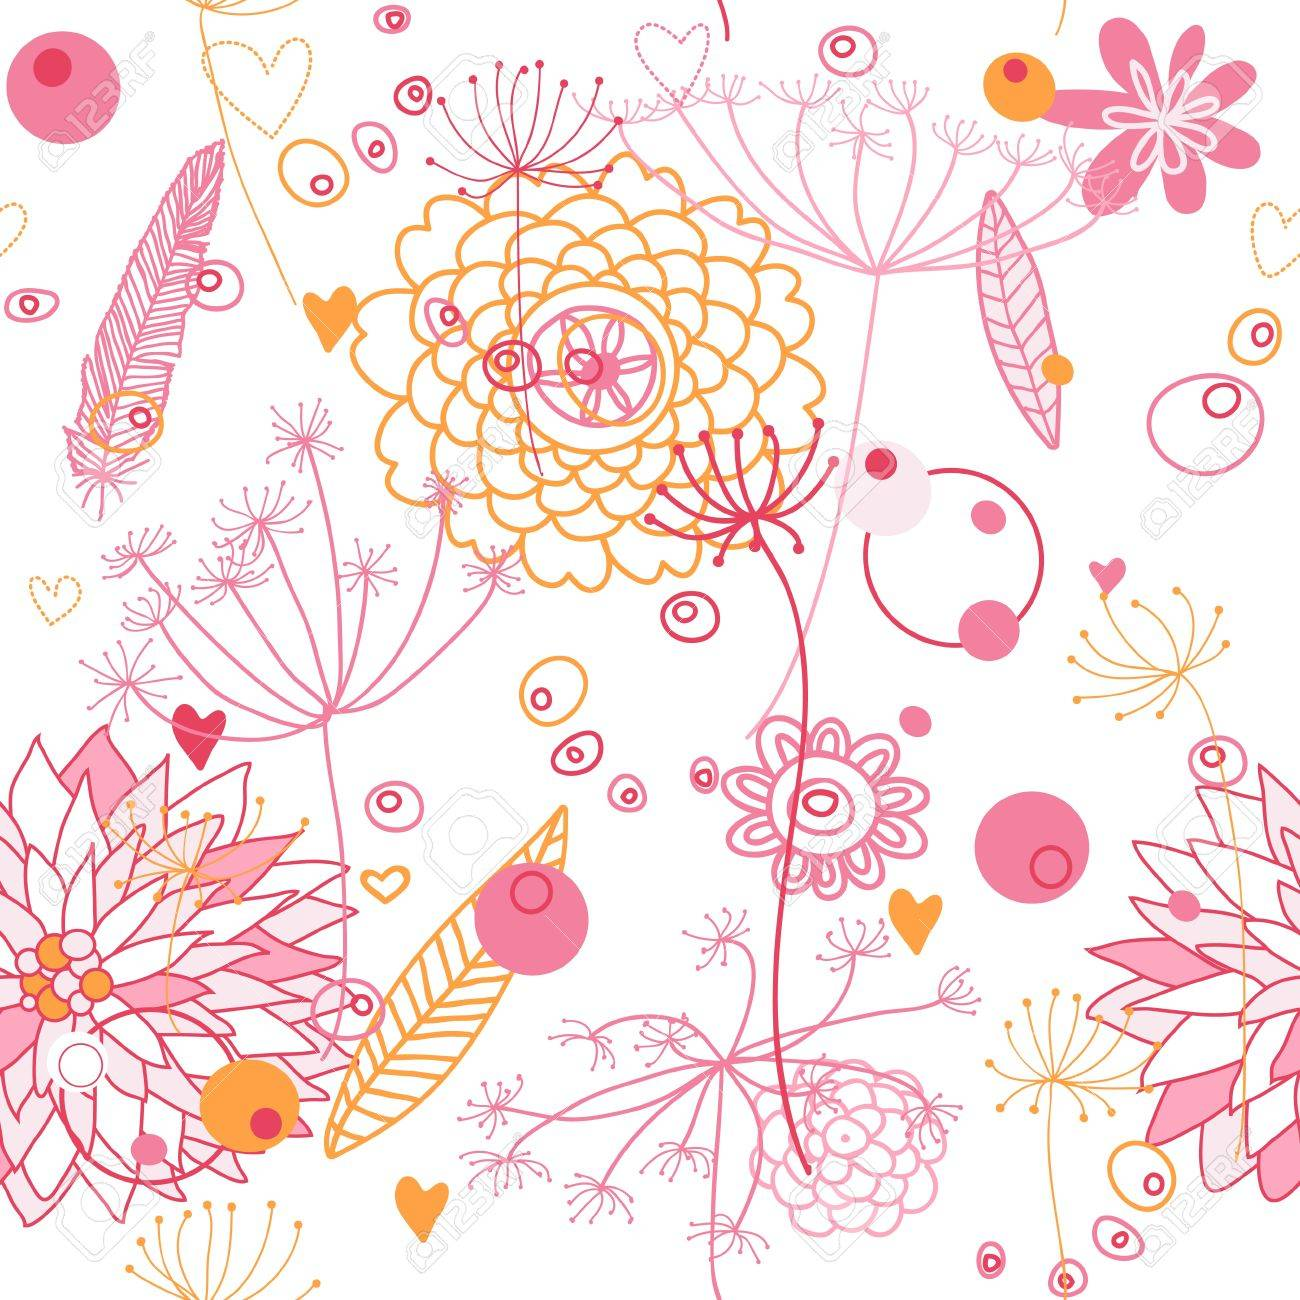 Vector, seamless abstract backgroung with flowers and plants. Endless floral pattern. Seamless pattern can be used for wallpaper, pattern fills, web page background, surface textures. Stock Vector - 10594599